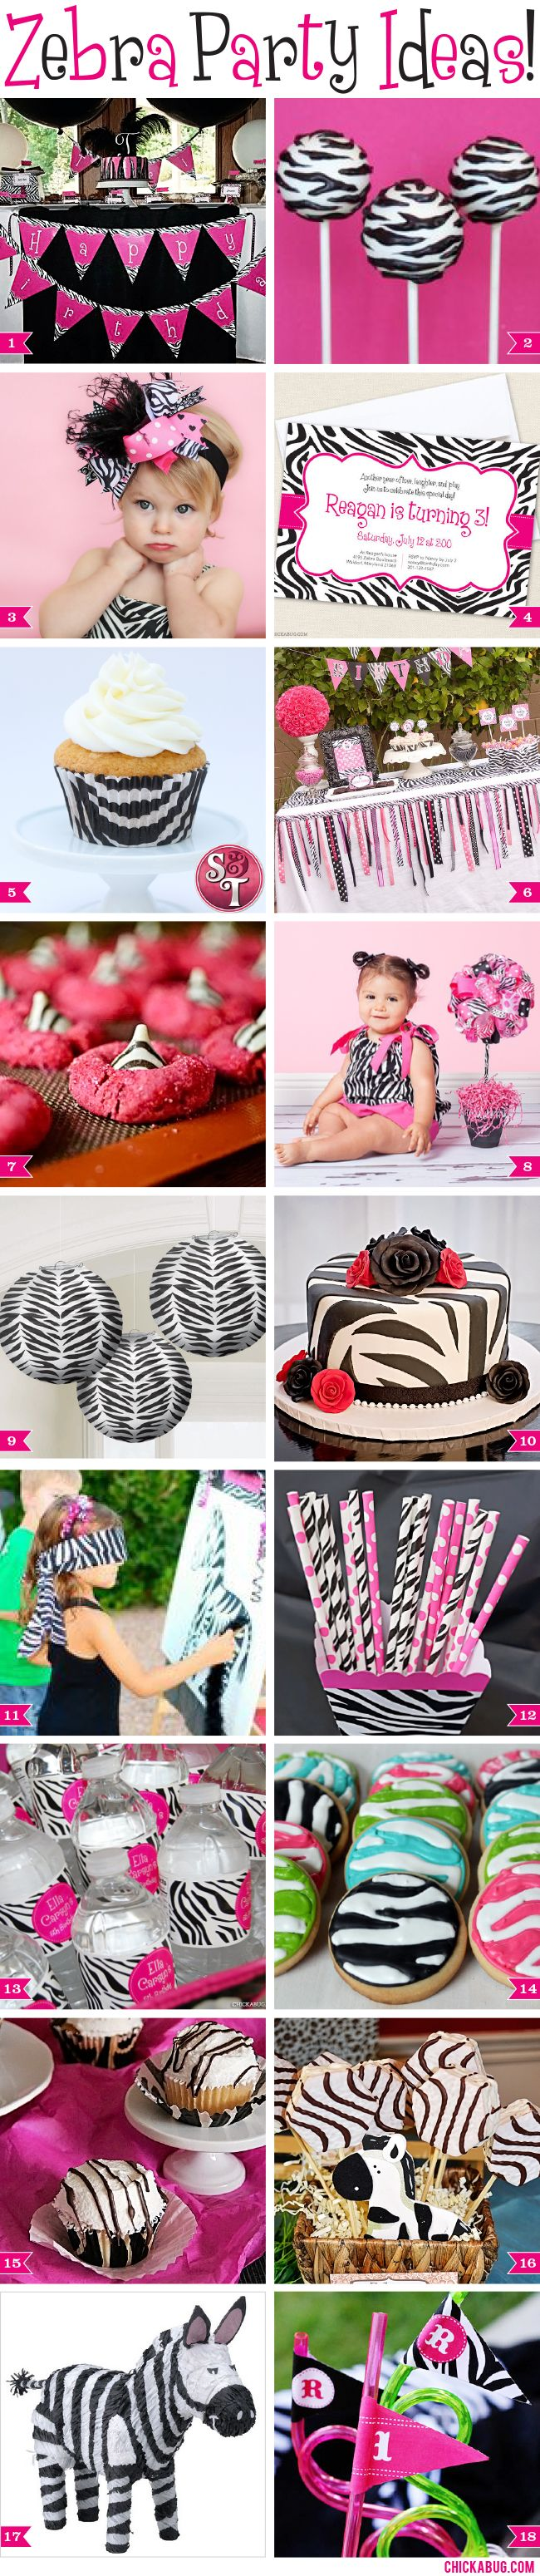 Fabulous zebra party ideas!